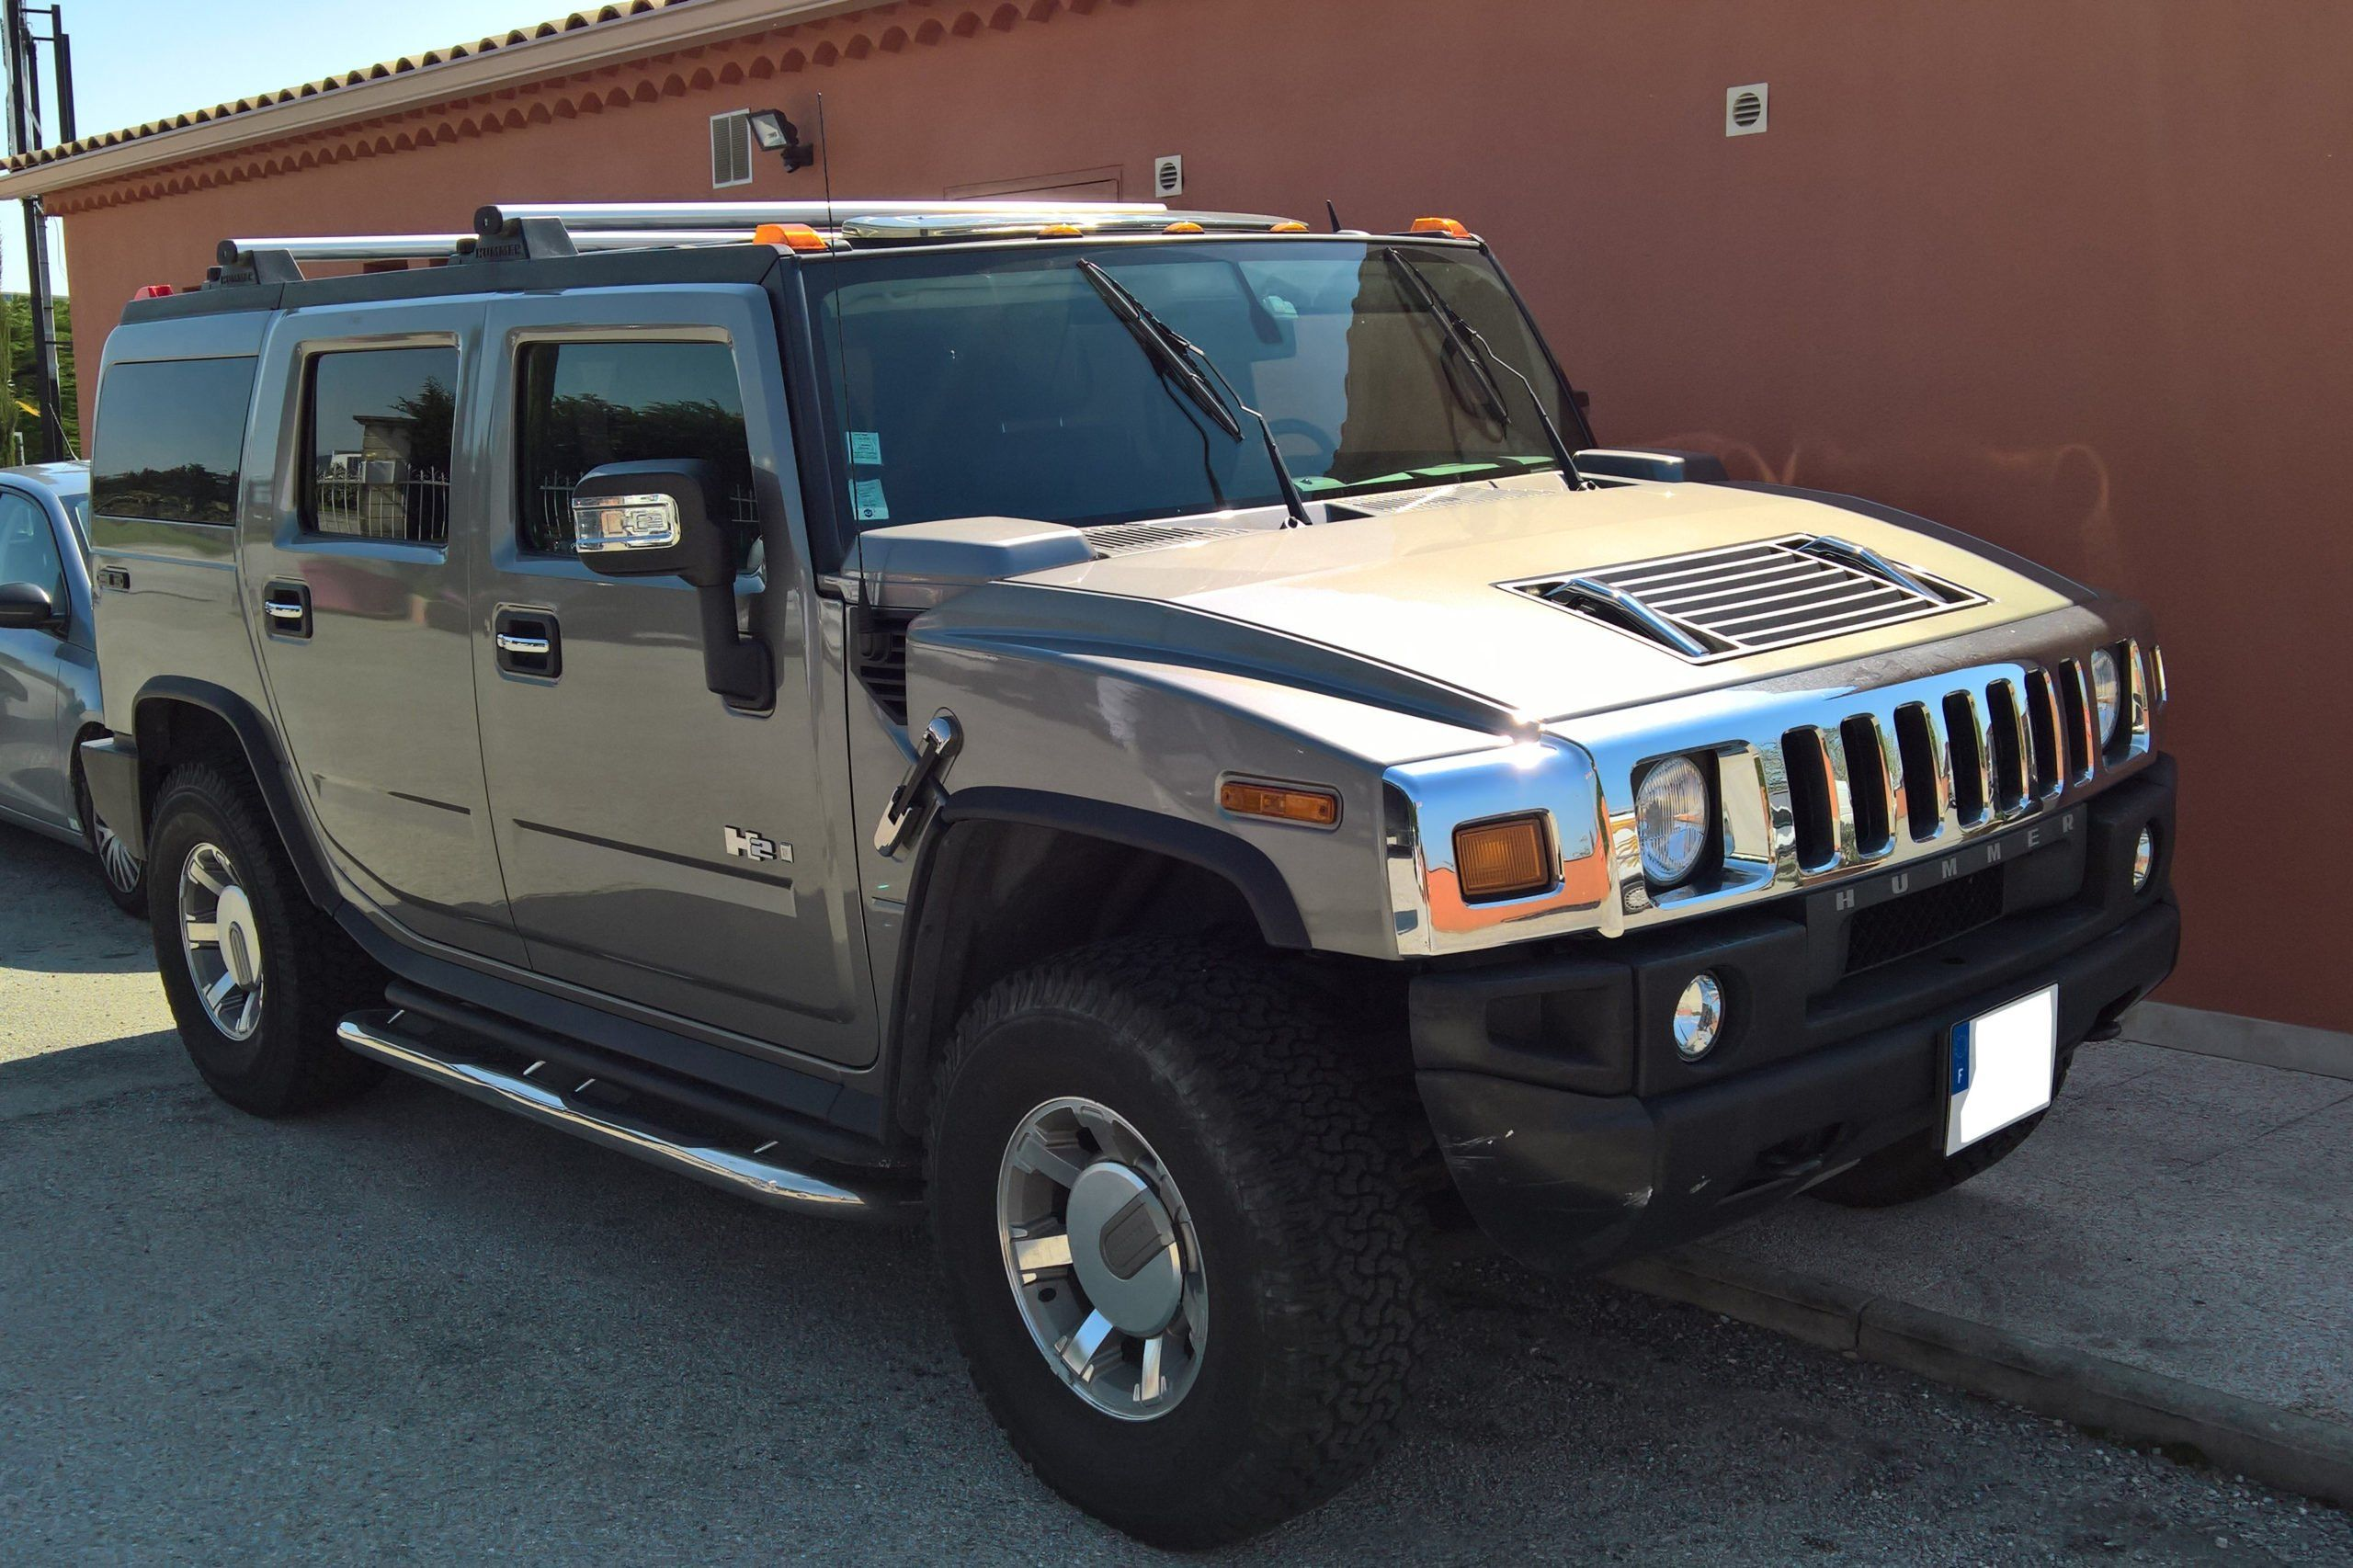 Putting A Hummer H2 On 13 Inch Wheels Can Be Tricky But It S So Worth It Hummer H2 Hummer Cars Hummer